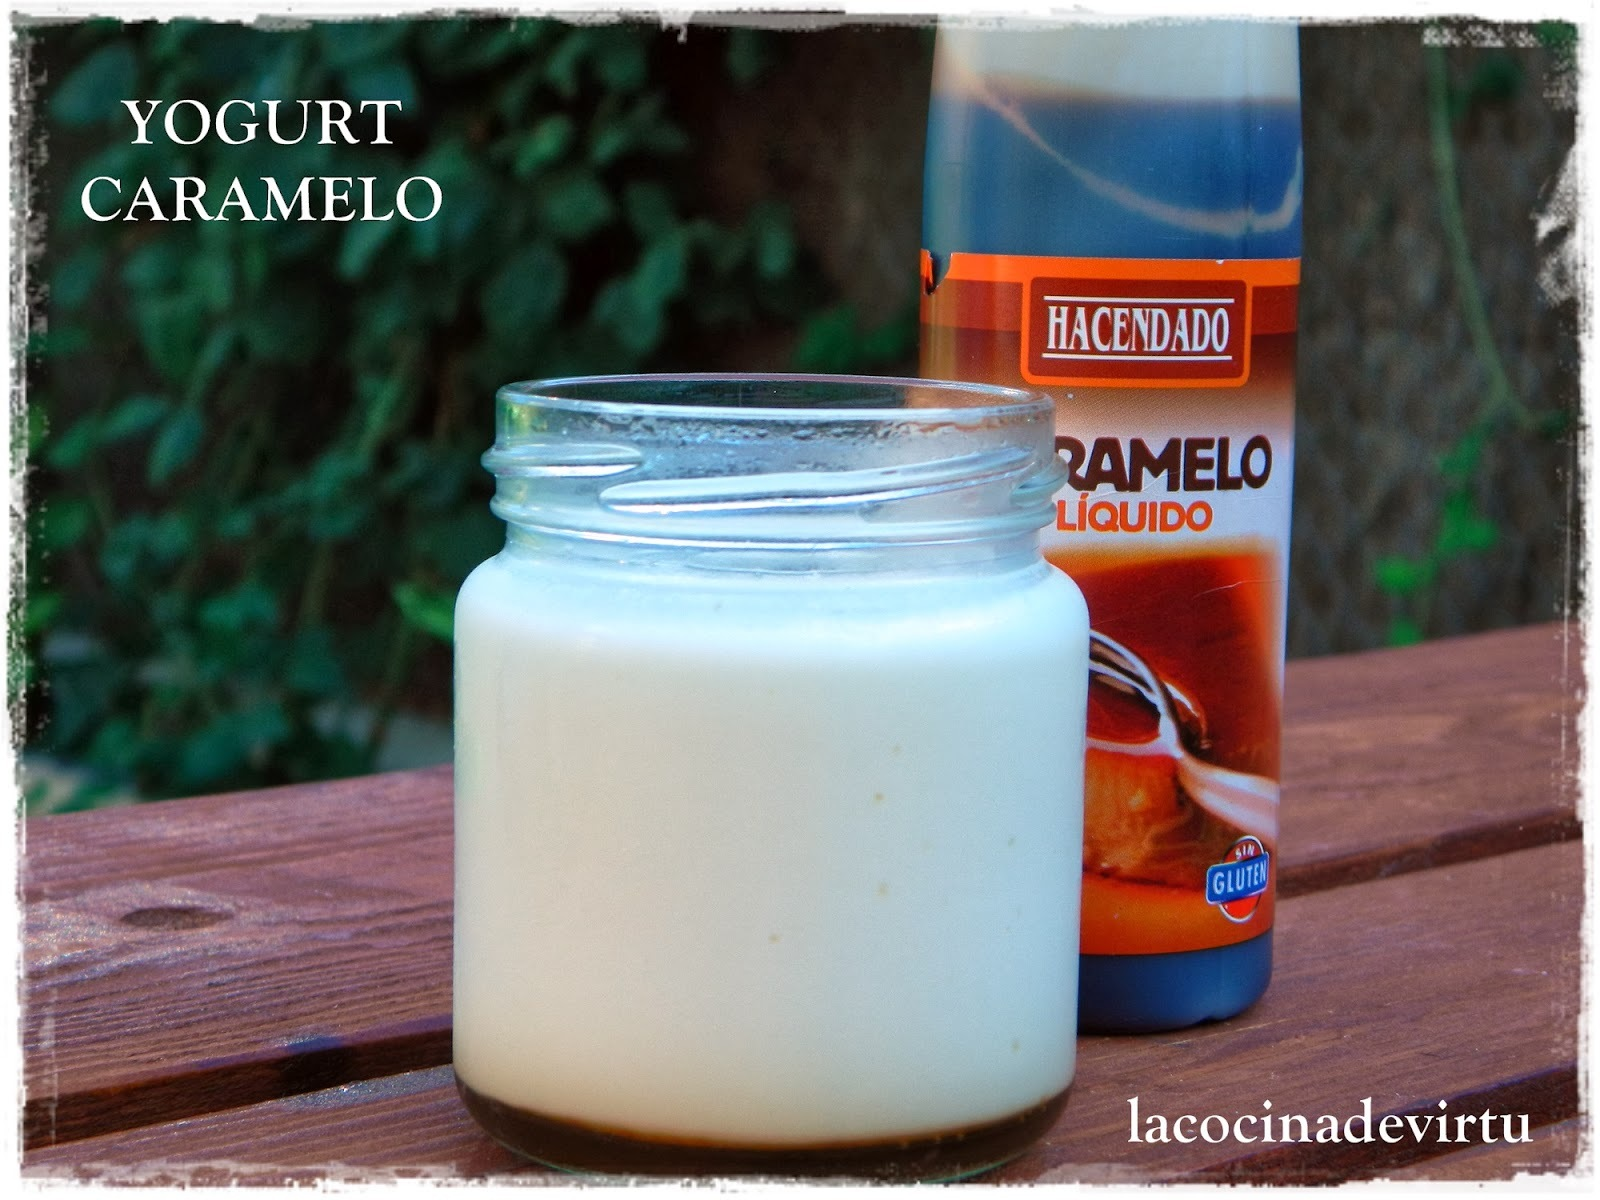 YOGURT DE CARAMELO